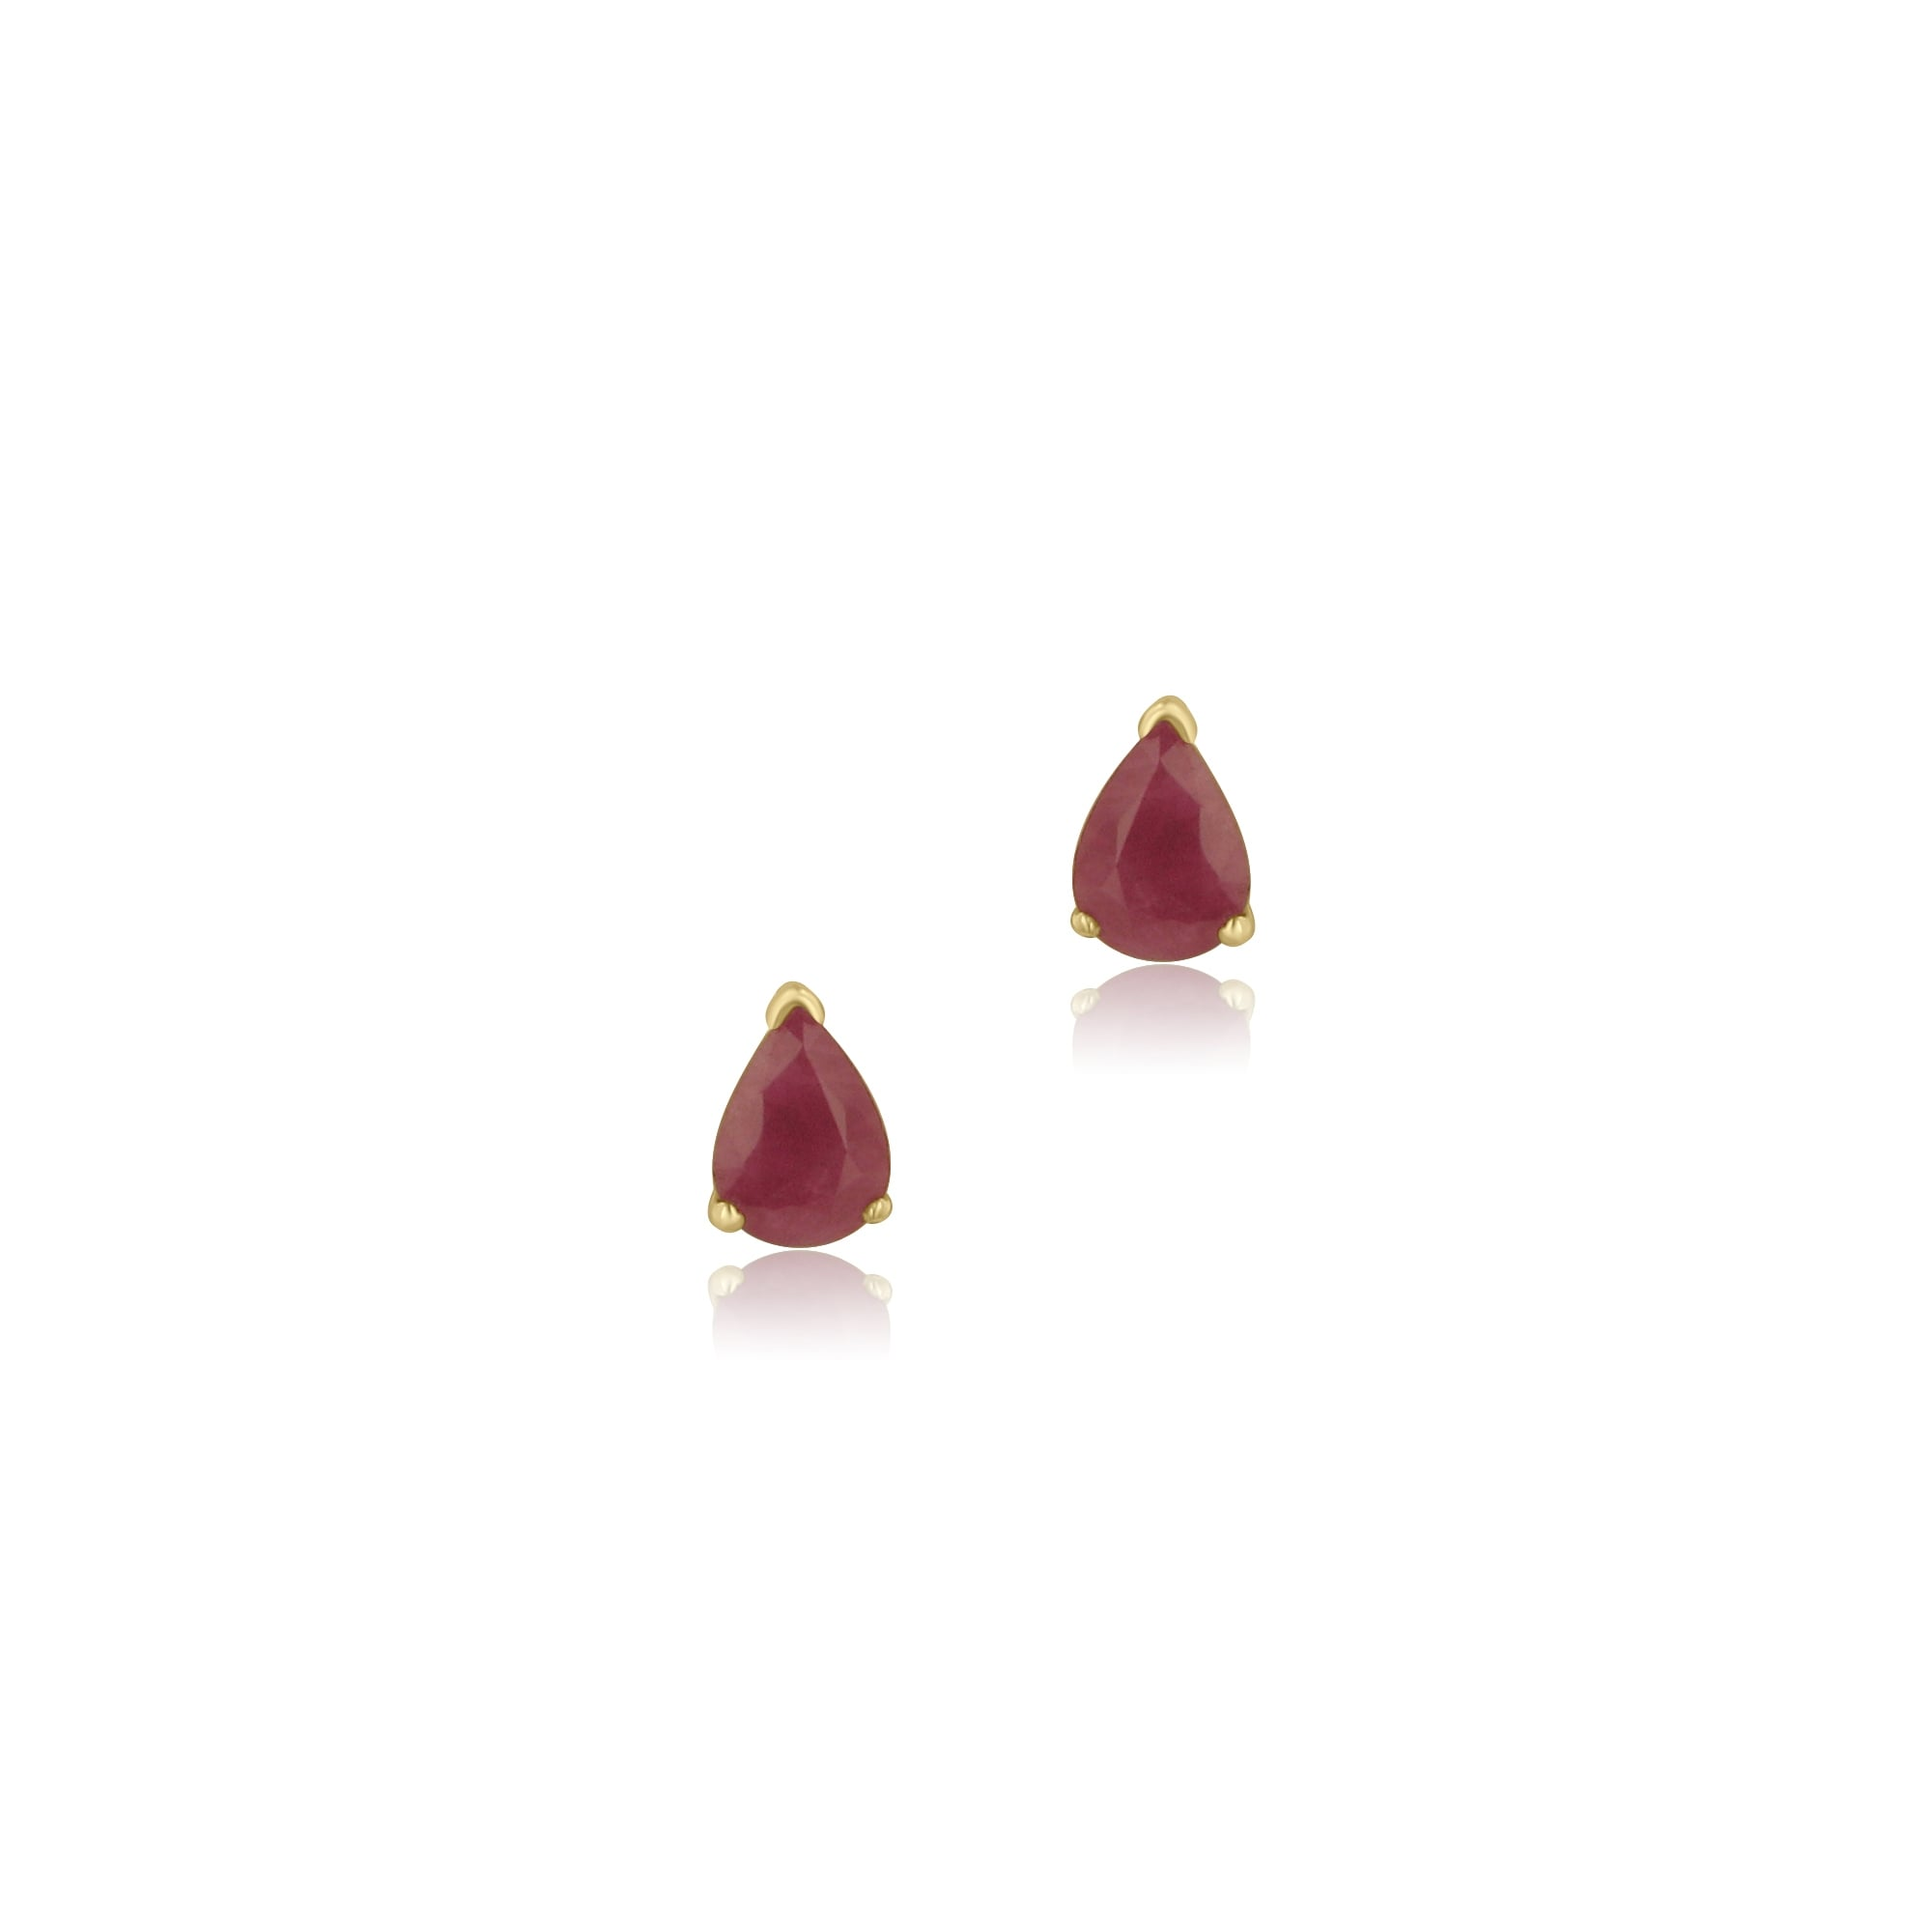 rubies set pair a ruby stud with earrings featuring diamond marquise of and collections pav graff butterfly pave